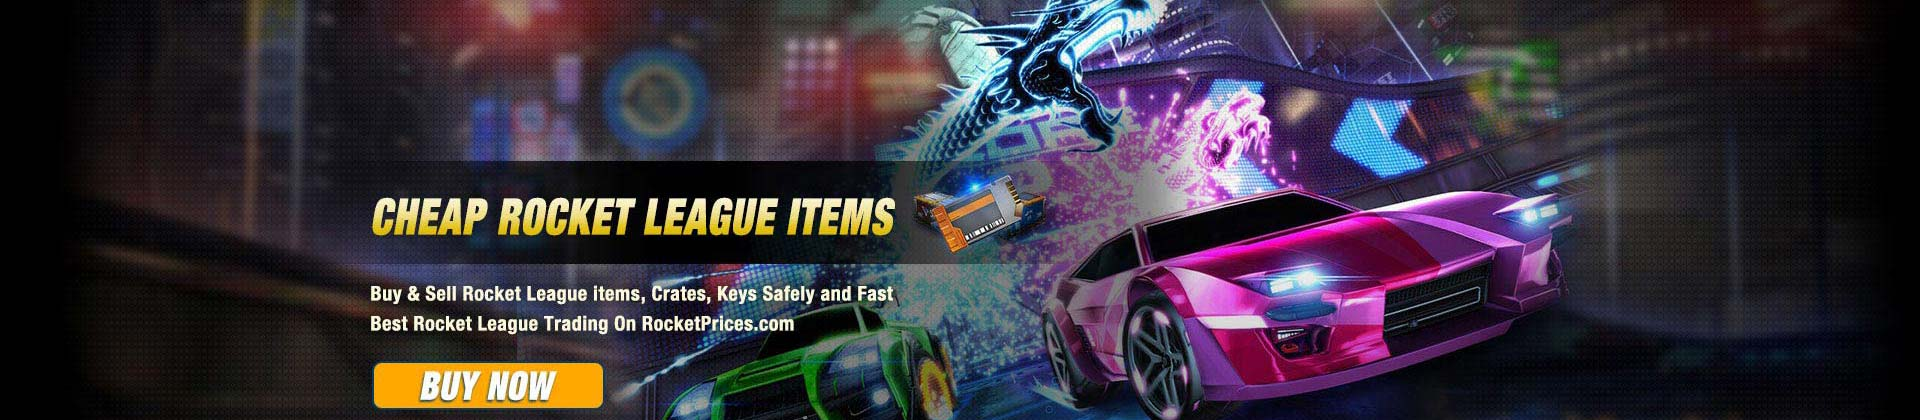 Welcome to buy Rocket League Items From Us.